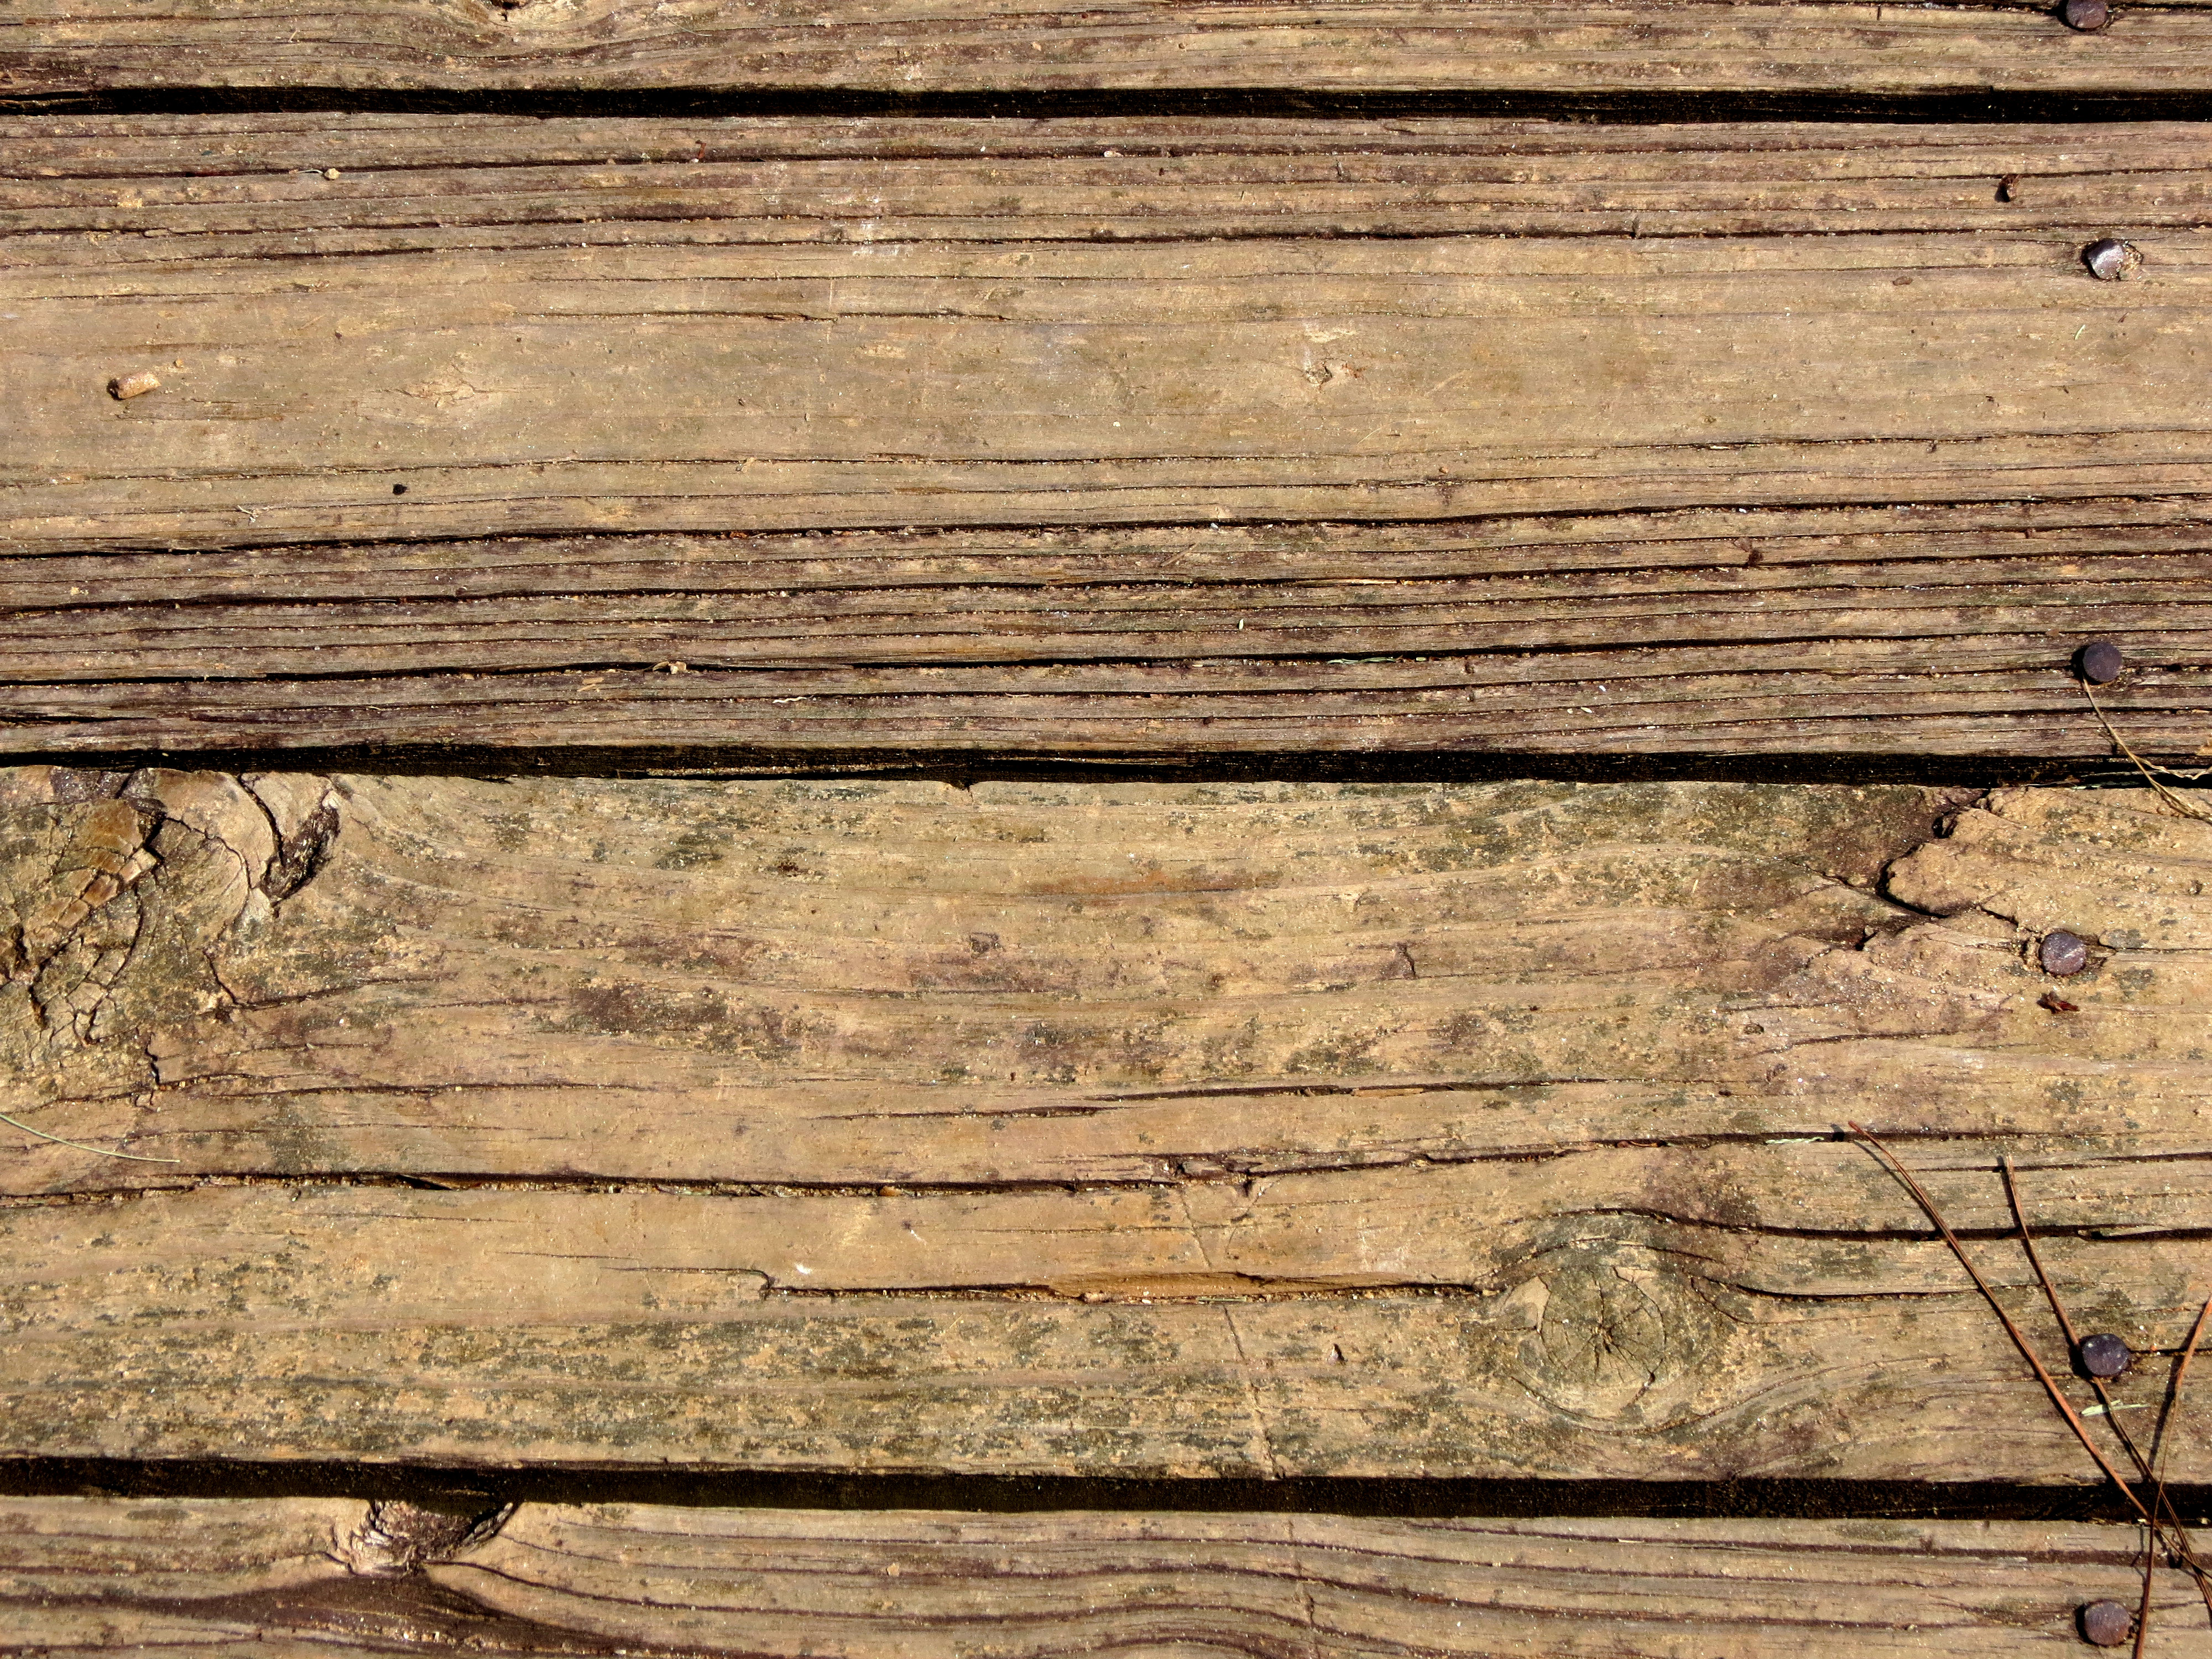 Close-up of a wooden texture photo